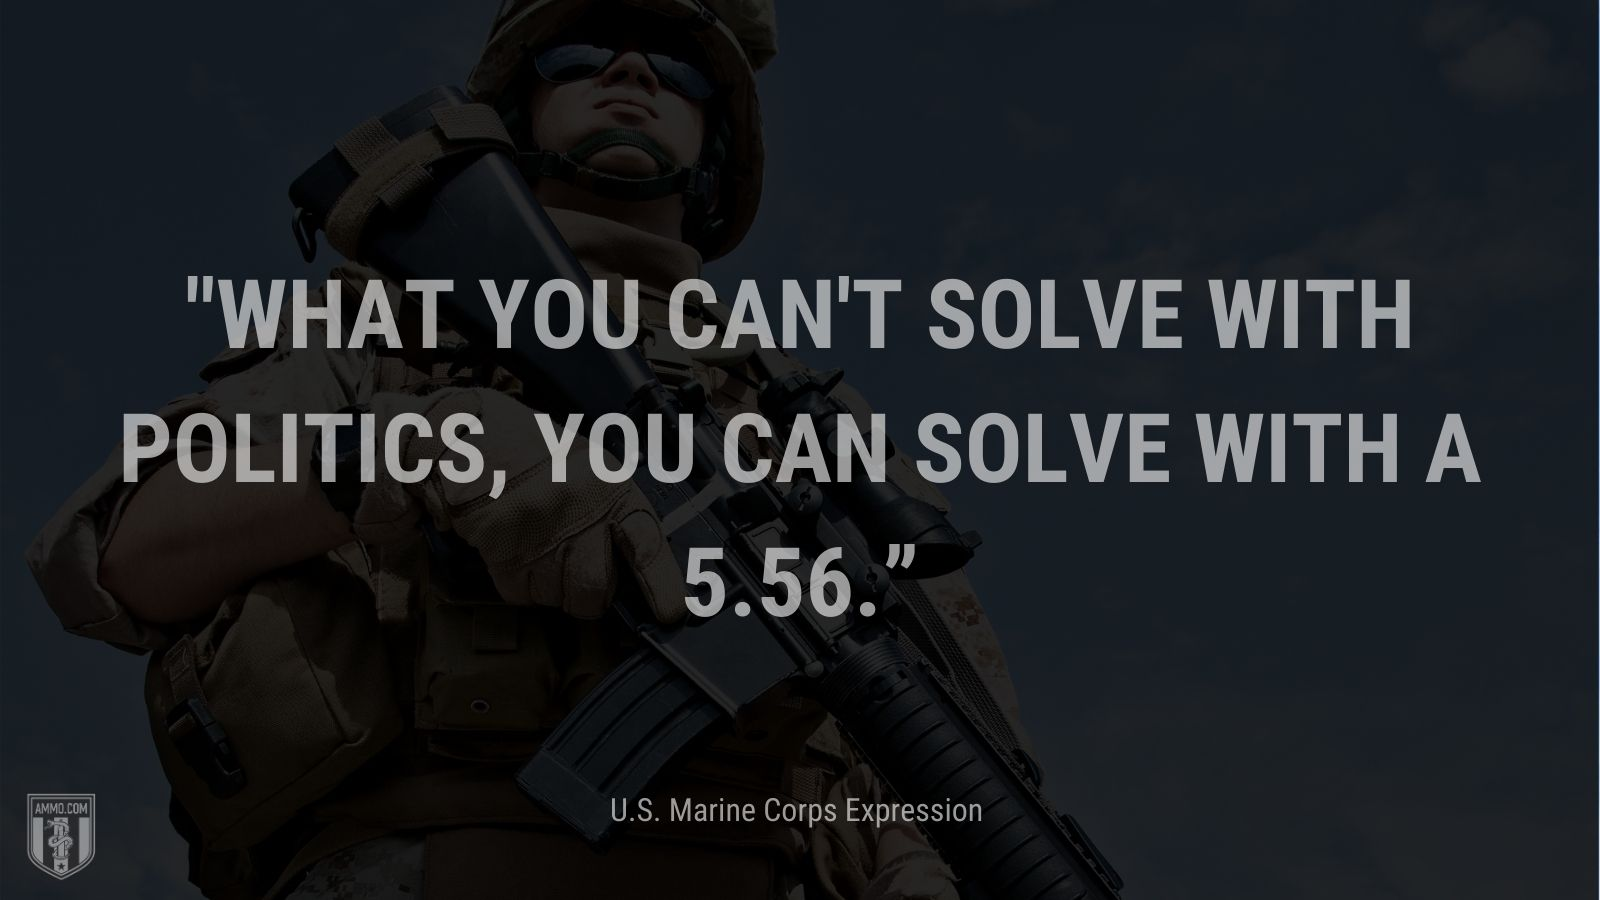 """""""What you can't solve with politics, you can solve with a 5.56."""" - U.S. Marine Corps Expression"""